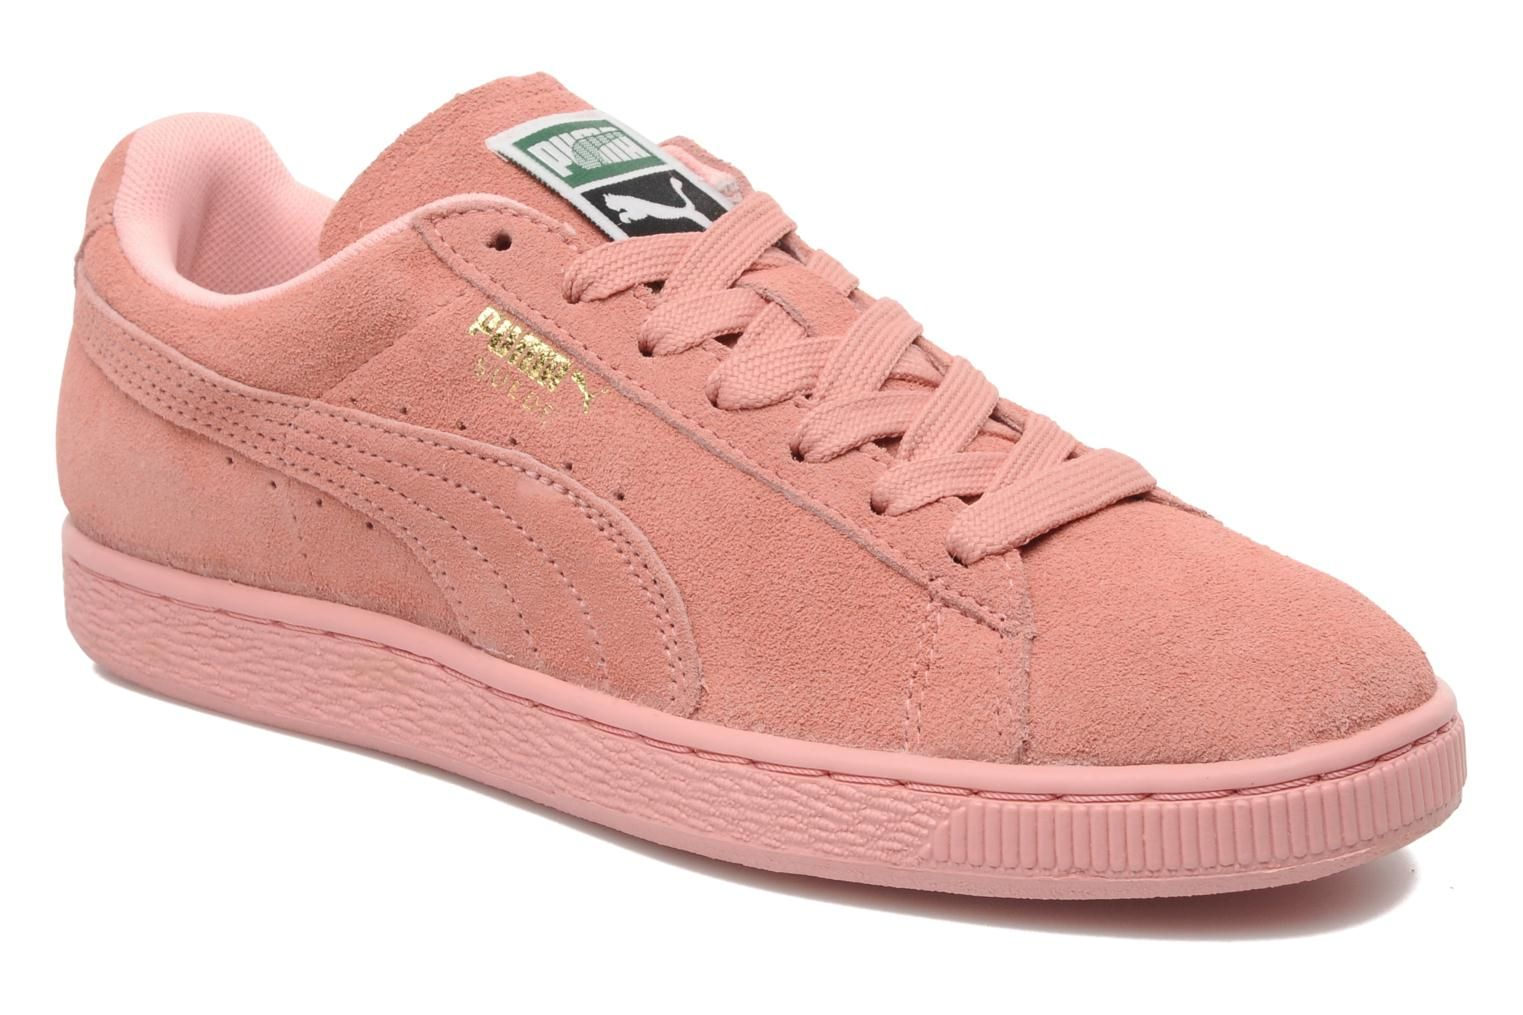 taille 40 5b03a a0397 Suede Classic Wn's | SHOES LAND | Puma suede, Sneakers, Shoes